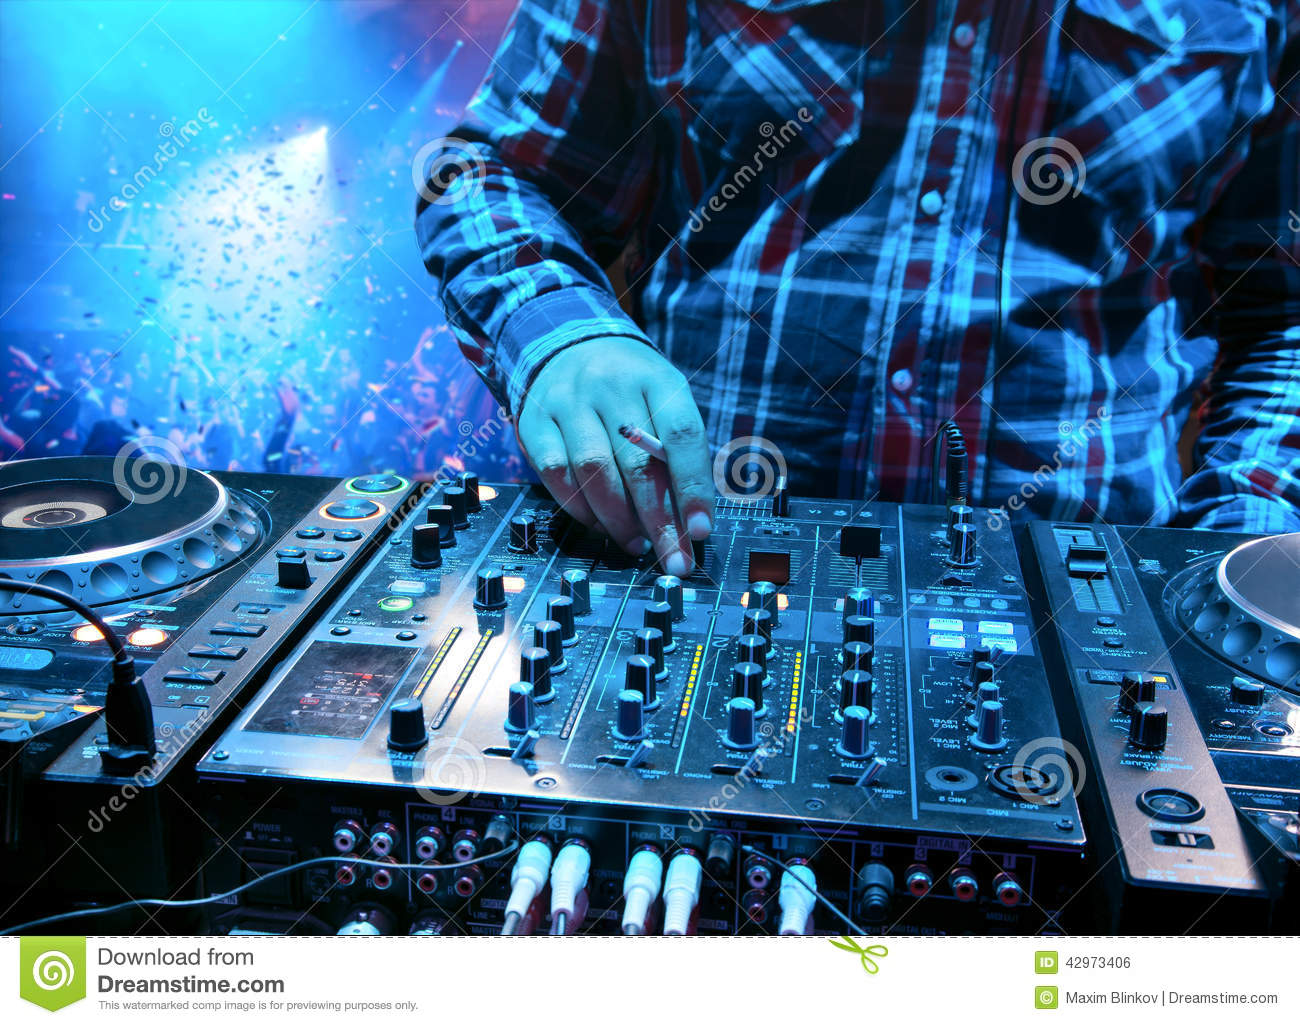 Dj mixes the track stock photo  Image of club, electronics